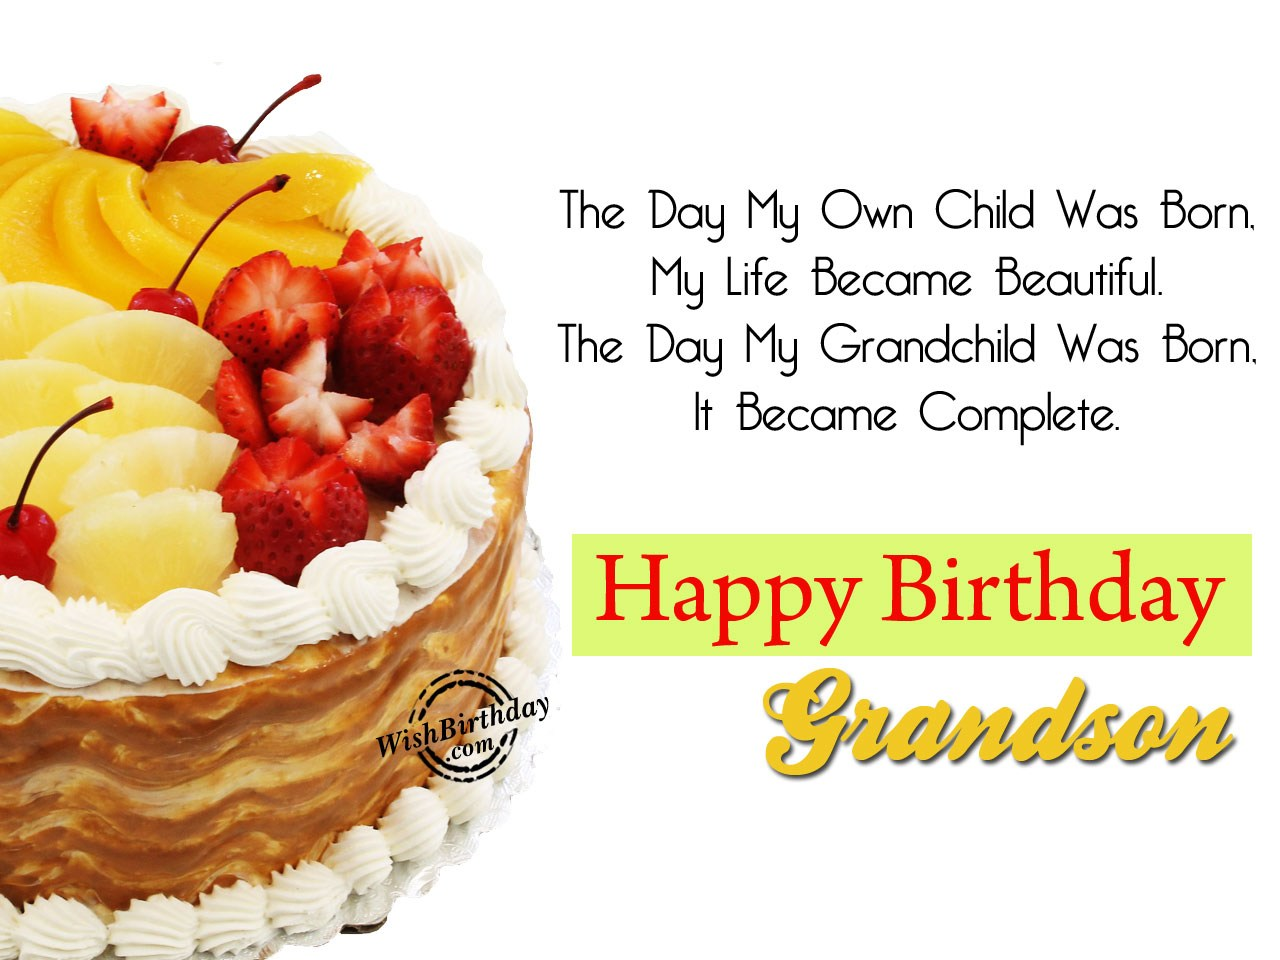 happy birthday to my grandson images ; The-Day-My-Grandchild-Was-Born